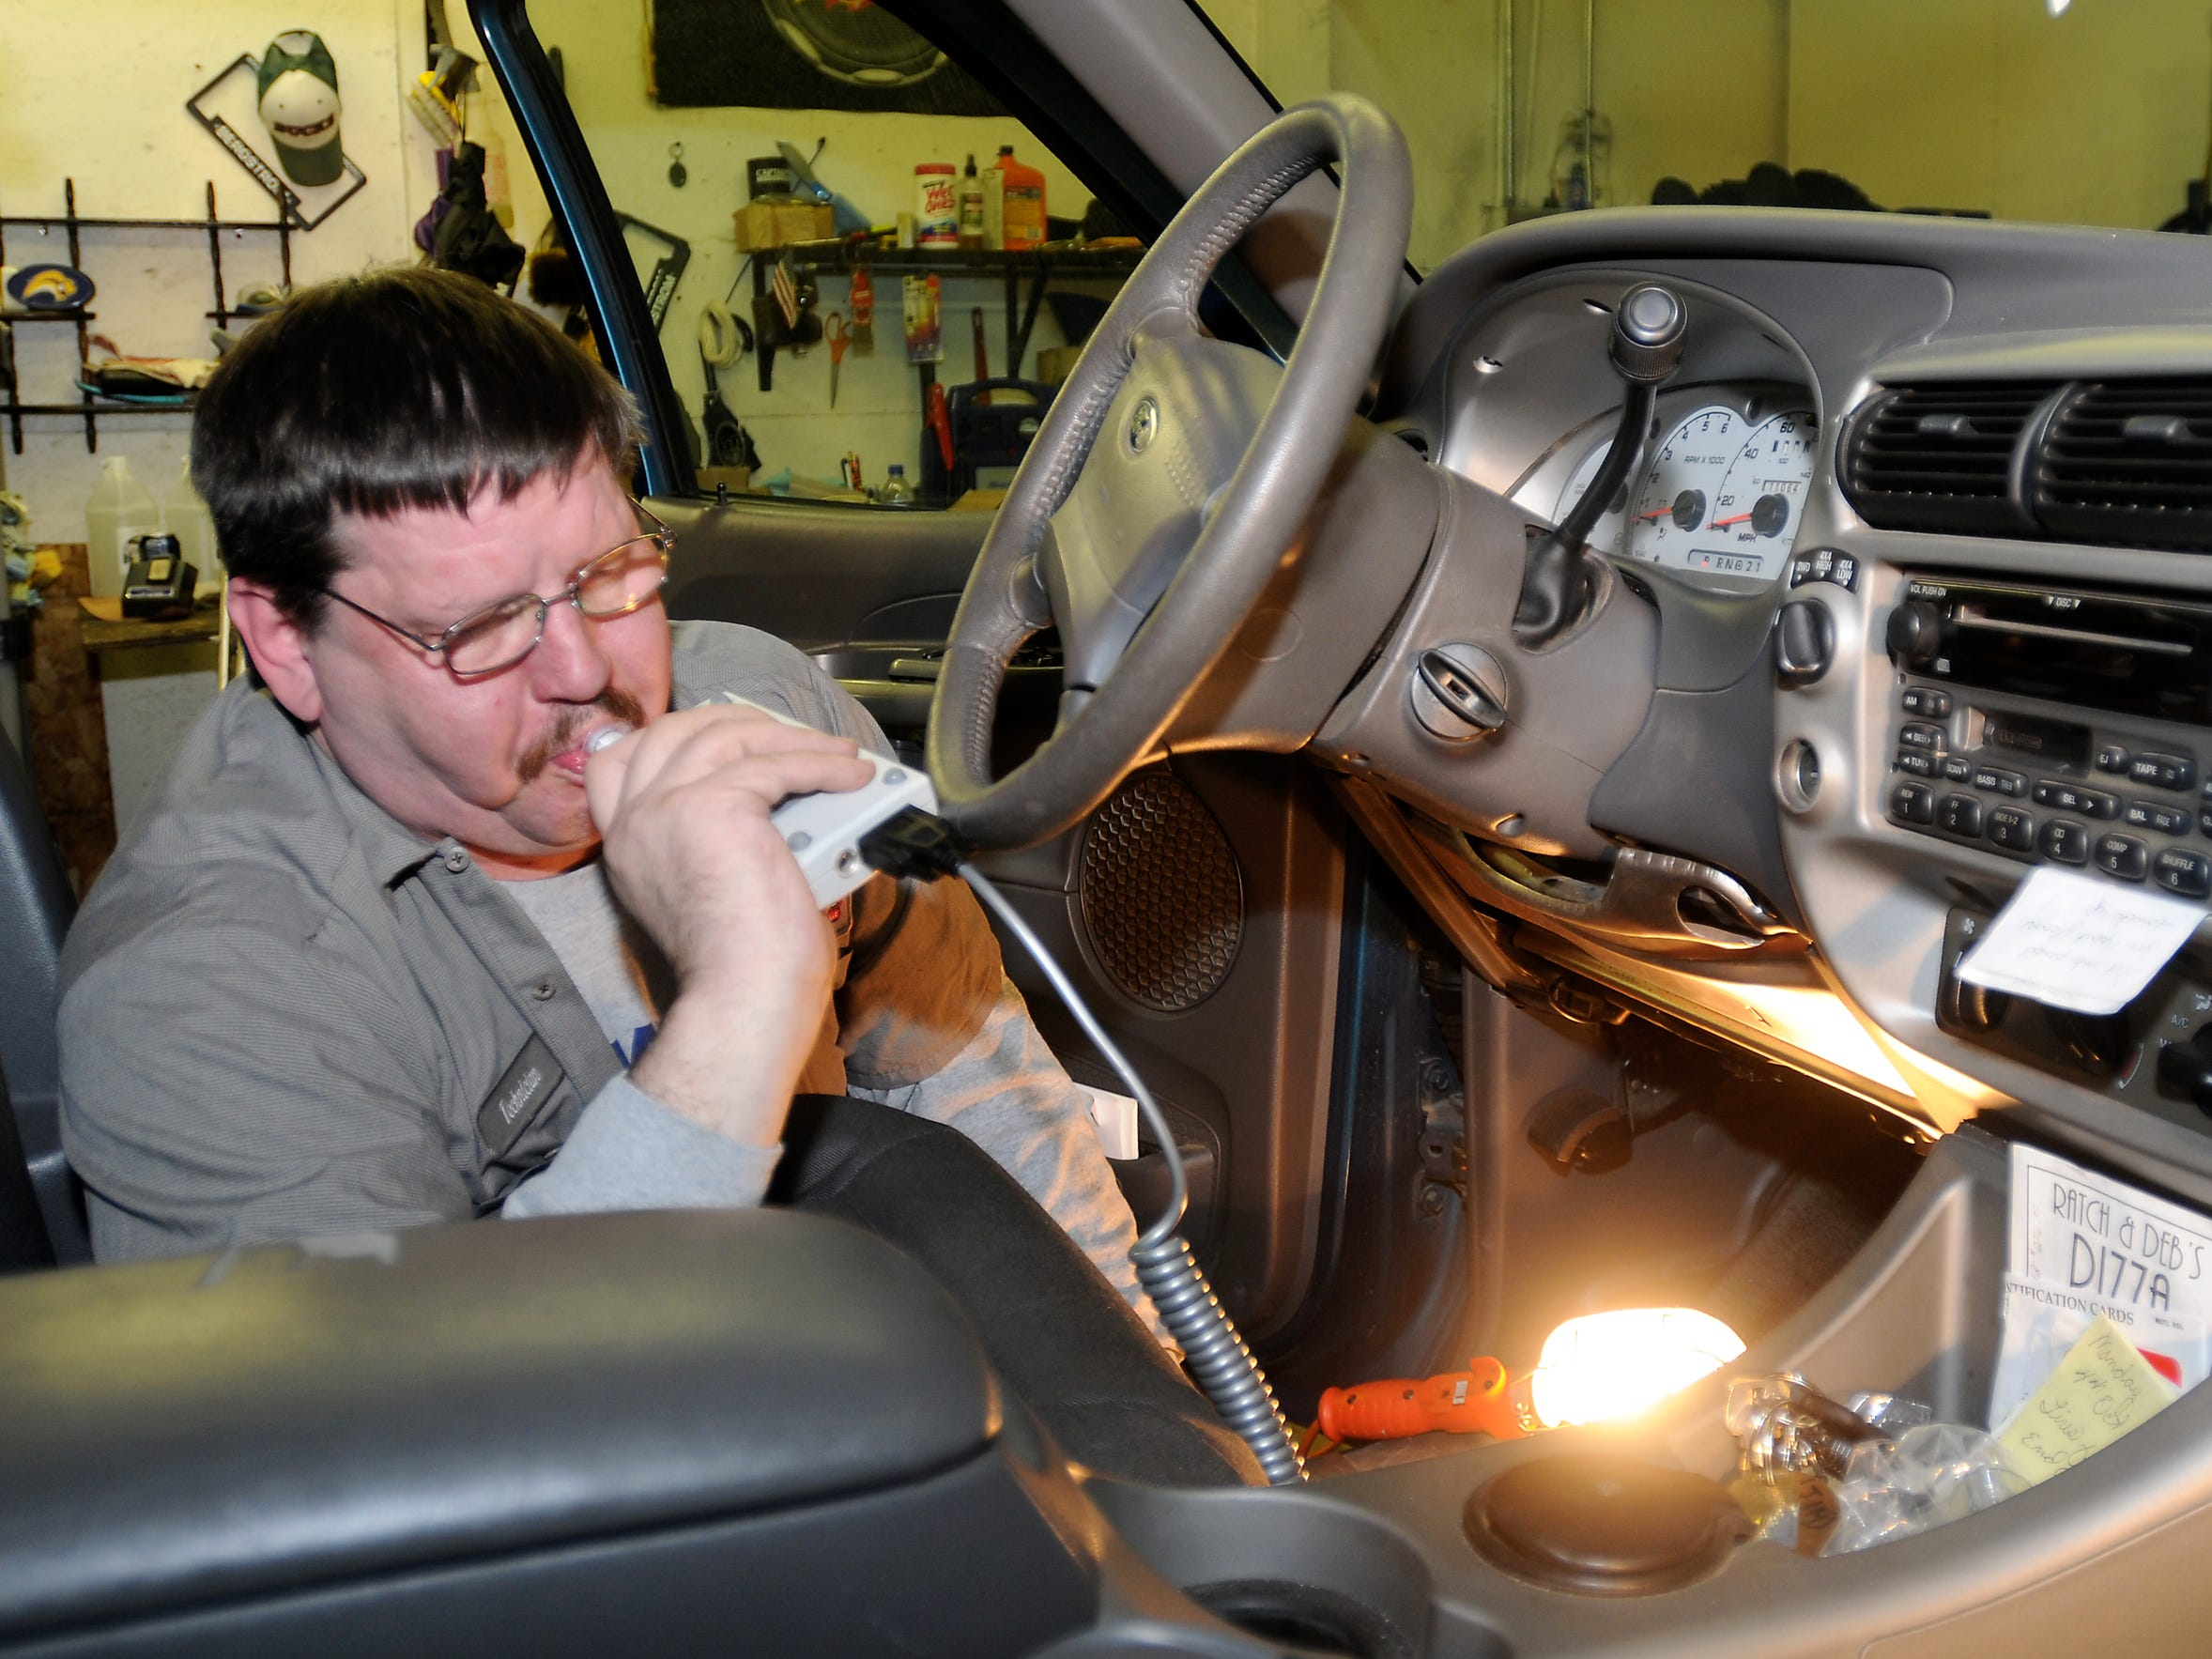 Ron Sienkierke, a technician at Extreme Clean Automobile